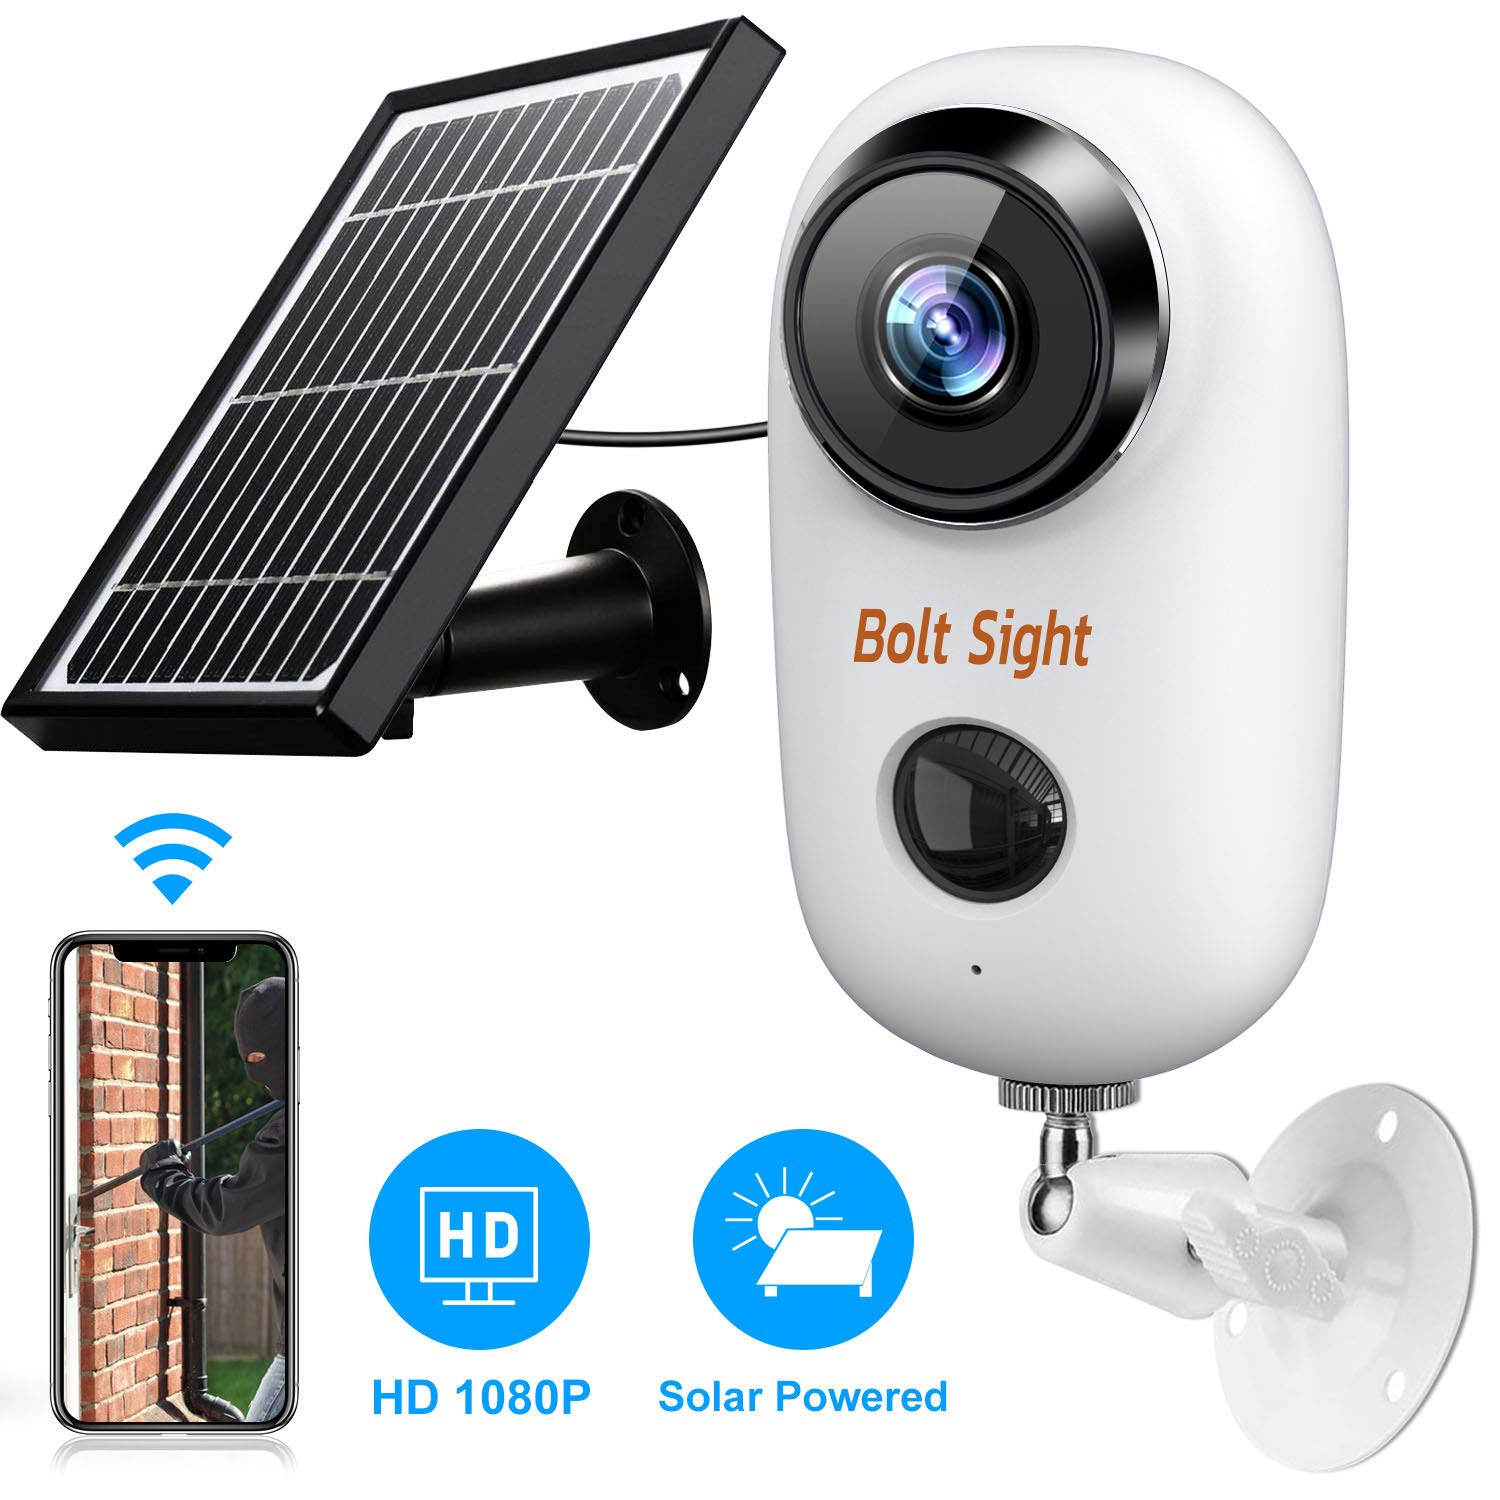 Outdoor Wireless Security Camera - Solar Cameras Battery Powered for Home - HD 1080P Rechargeable Power Operated Outside Camaras,Wirefree House Video Surveillance CCTV System 2-Way Audio,Night Vision by Bolt Sight